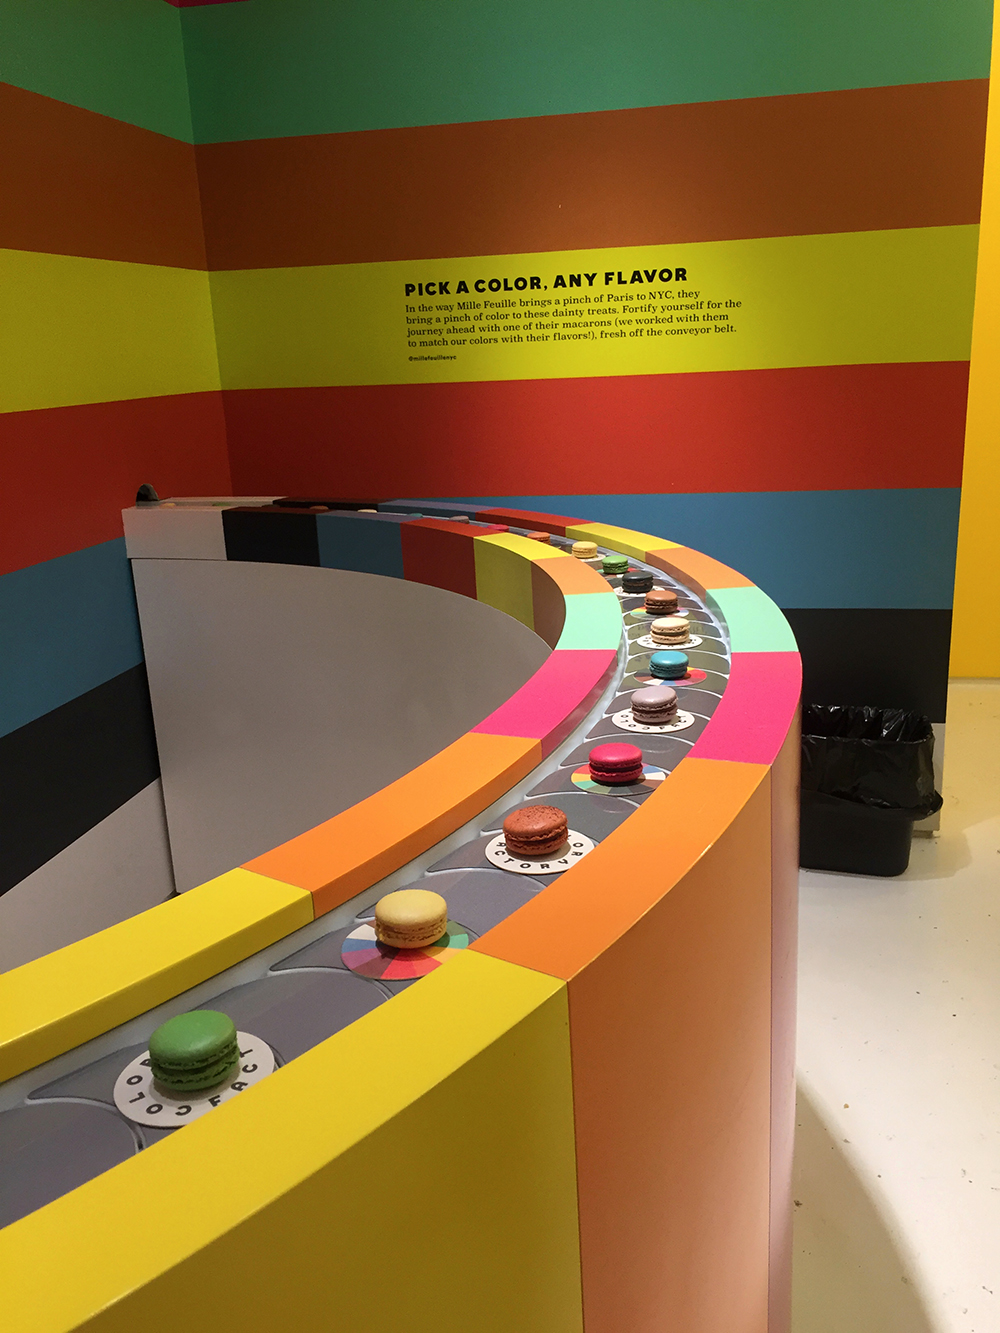 Rainbow macaroon conveyor belt installation at the Color Factory in New York City, New York